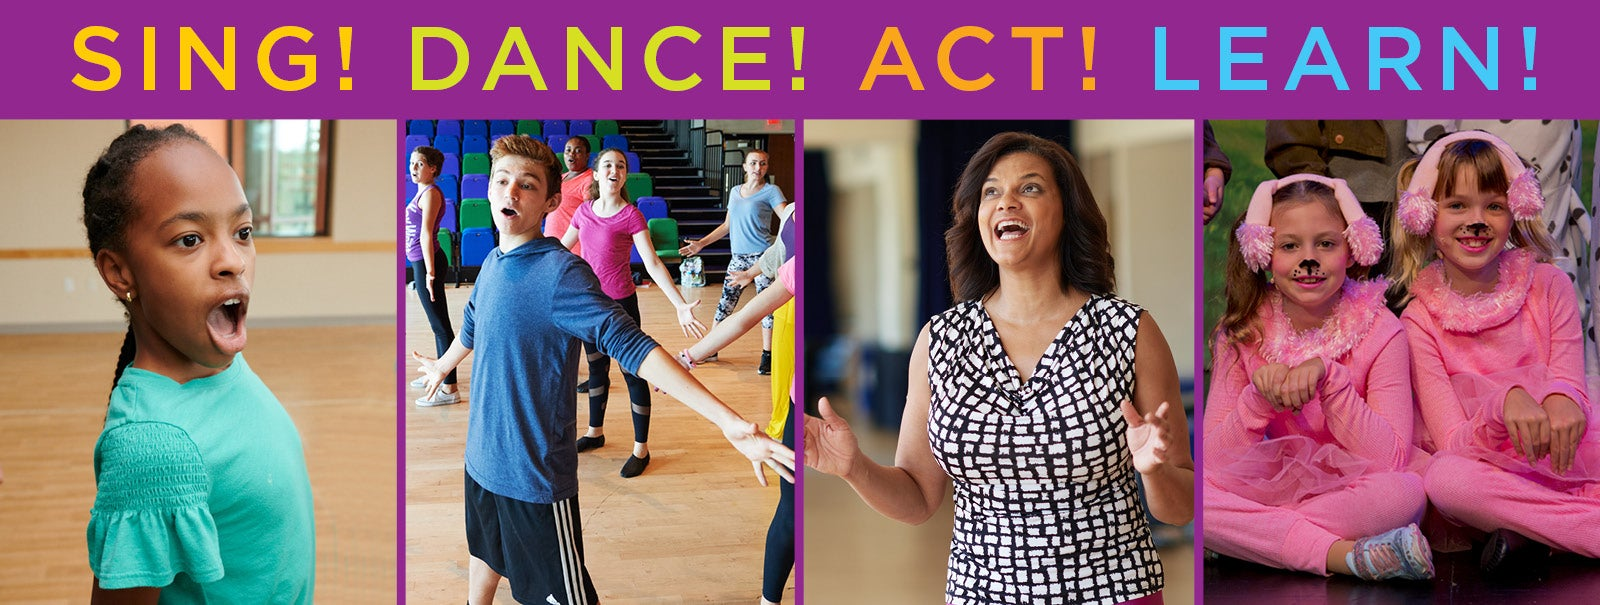 More Info - TAKE A THEATER CLASS! REGISTER NOW!